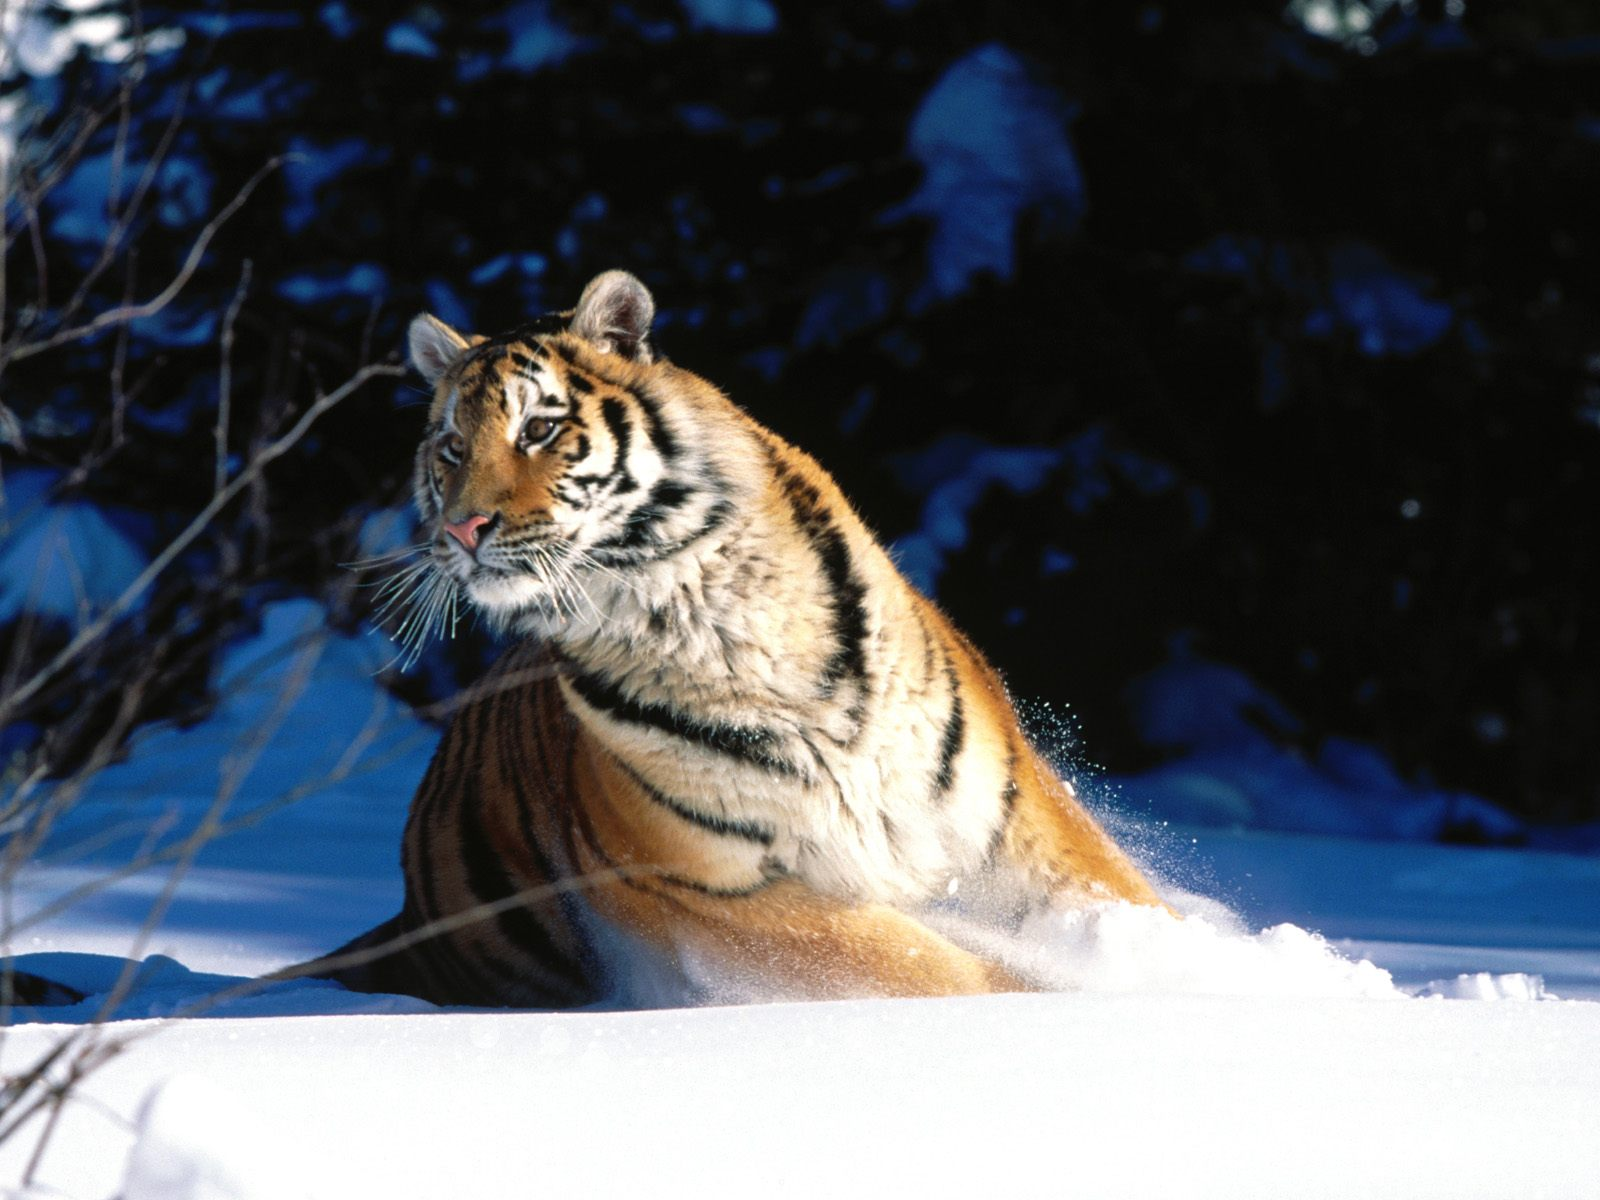 Wintery Scuddle, Siberian Tiger